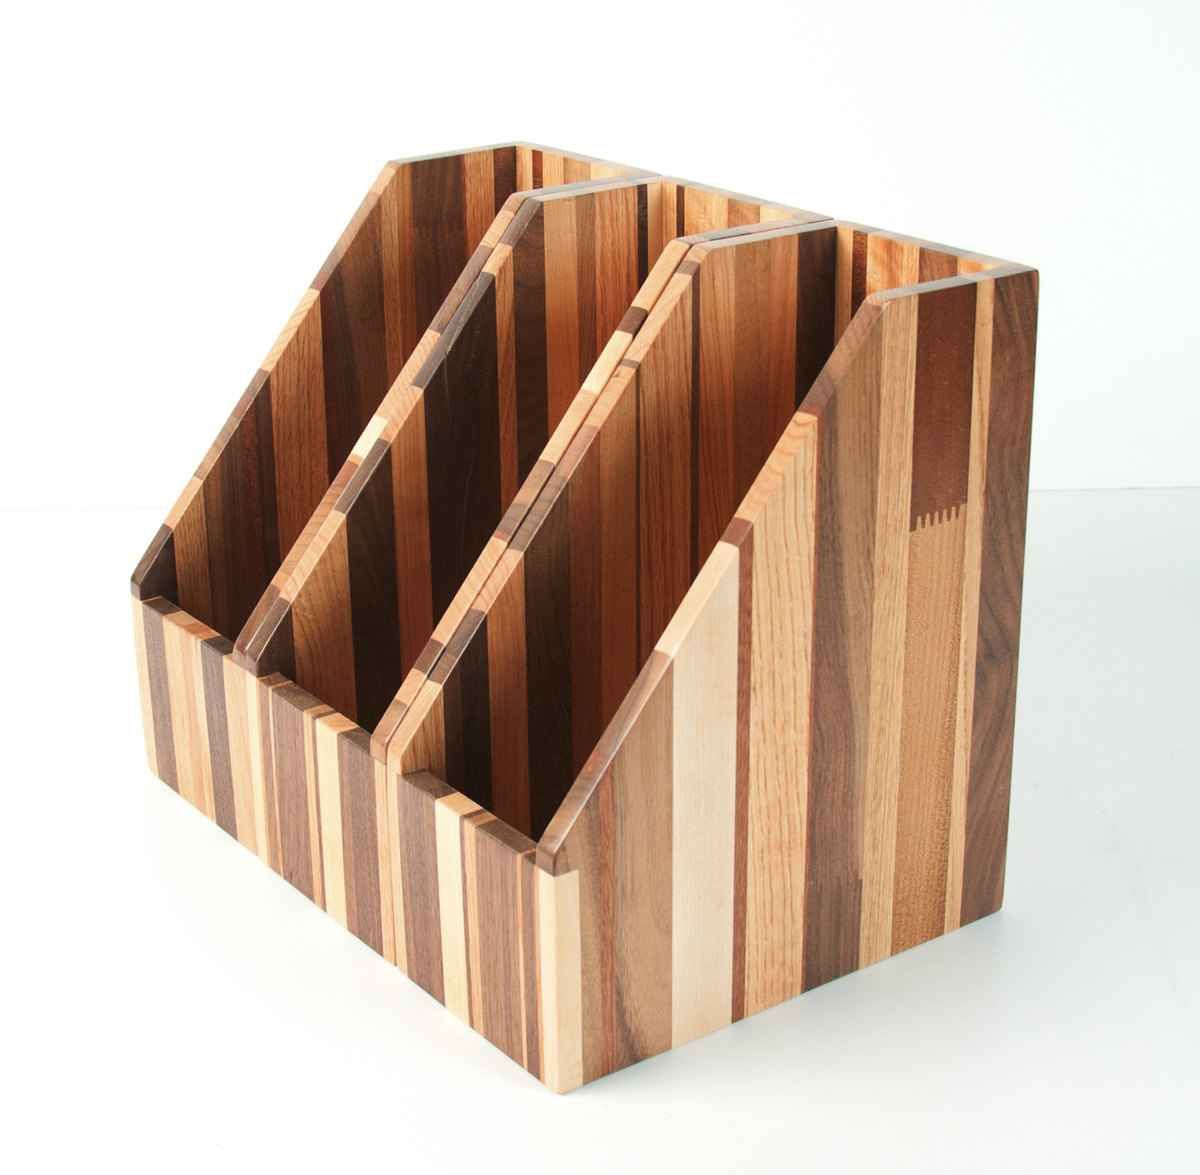 I love the look of this Upcycled Reclaimed Recyled Wood File Holder  Magazine Holder from Mitztakahashi on Etsy